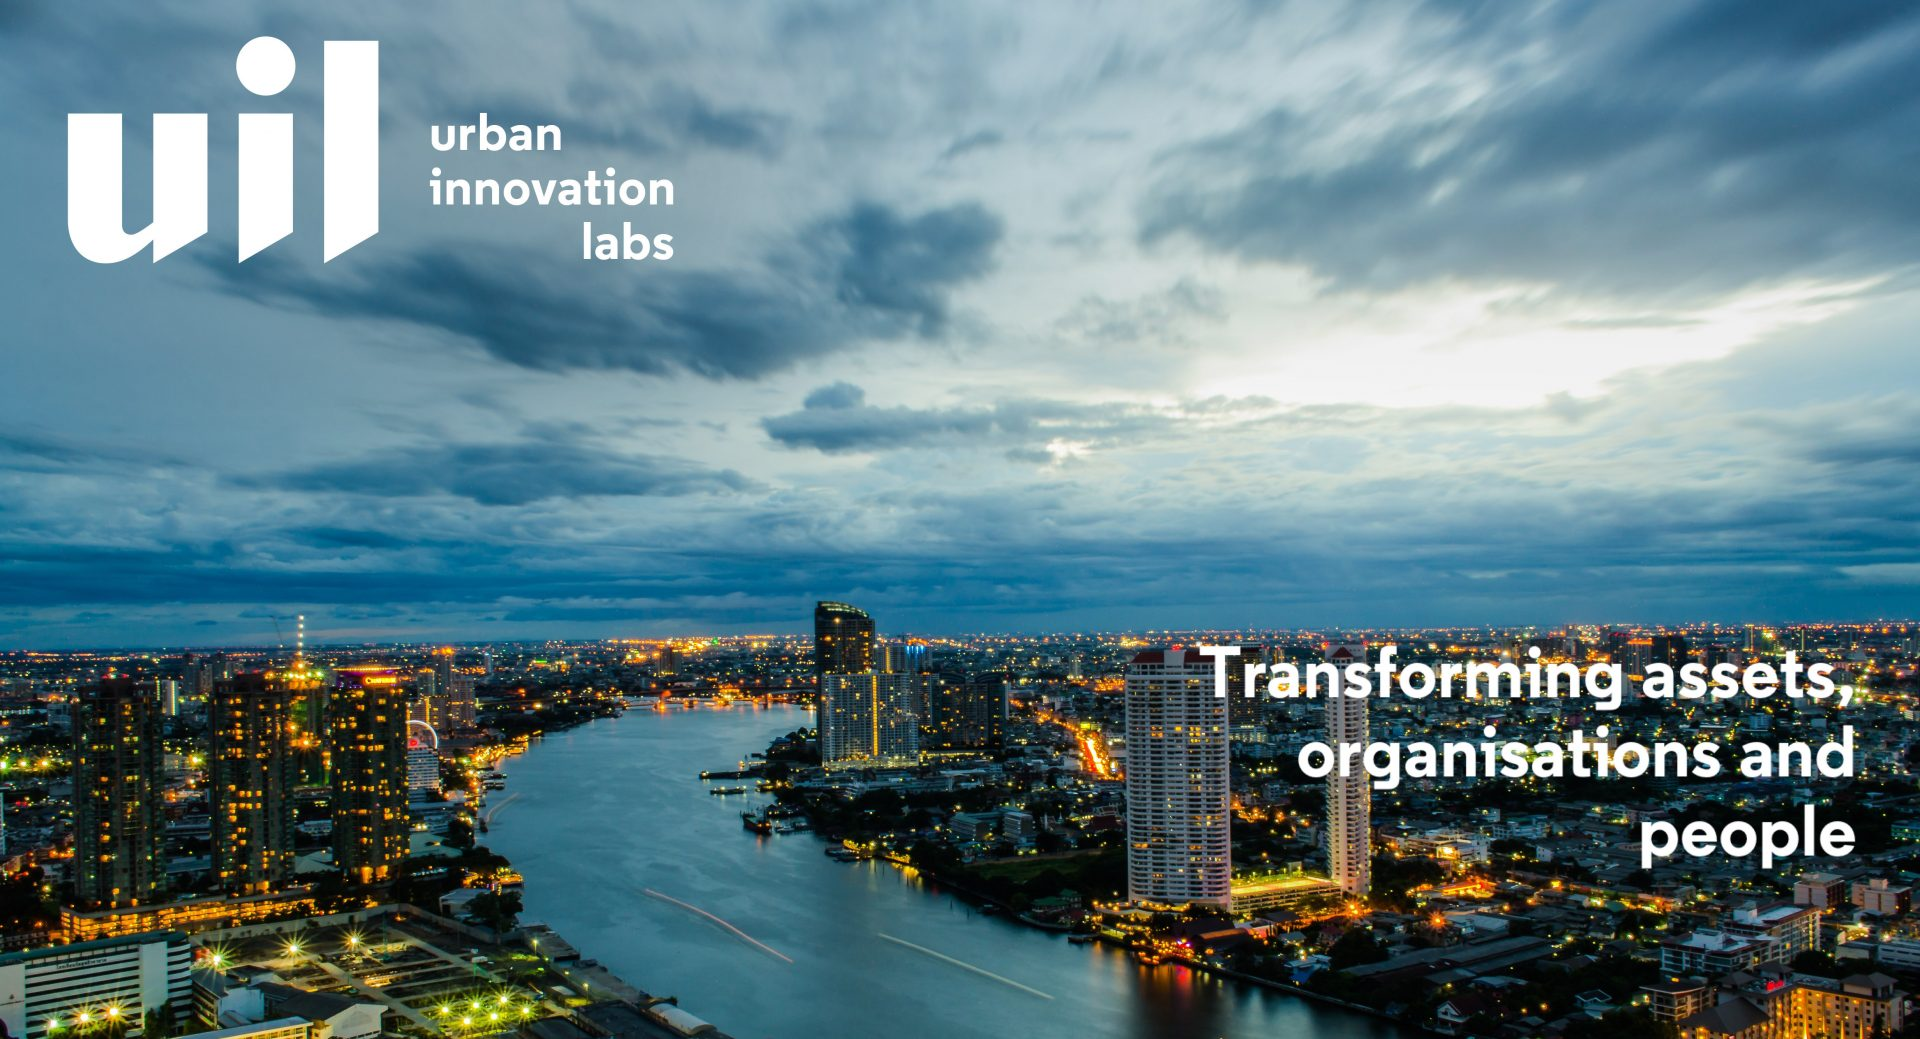 urban innovation labs